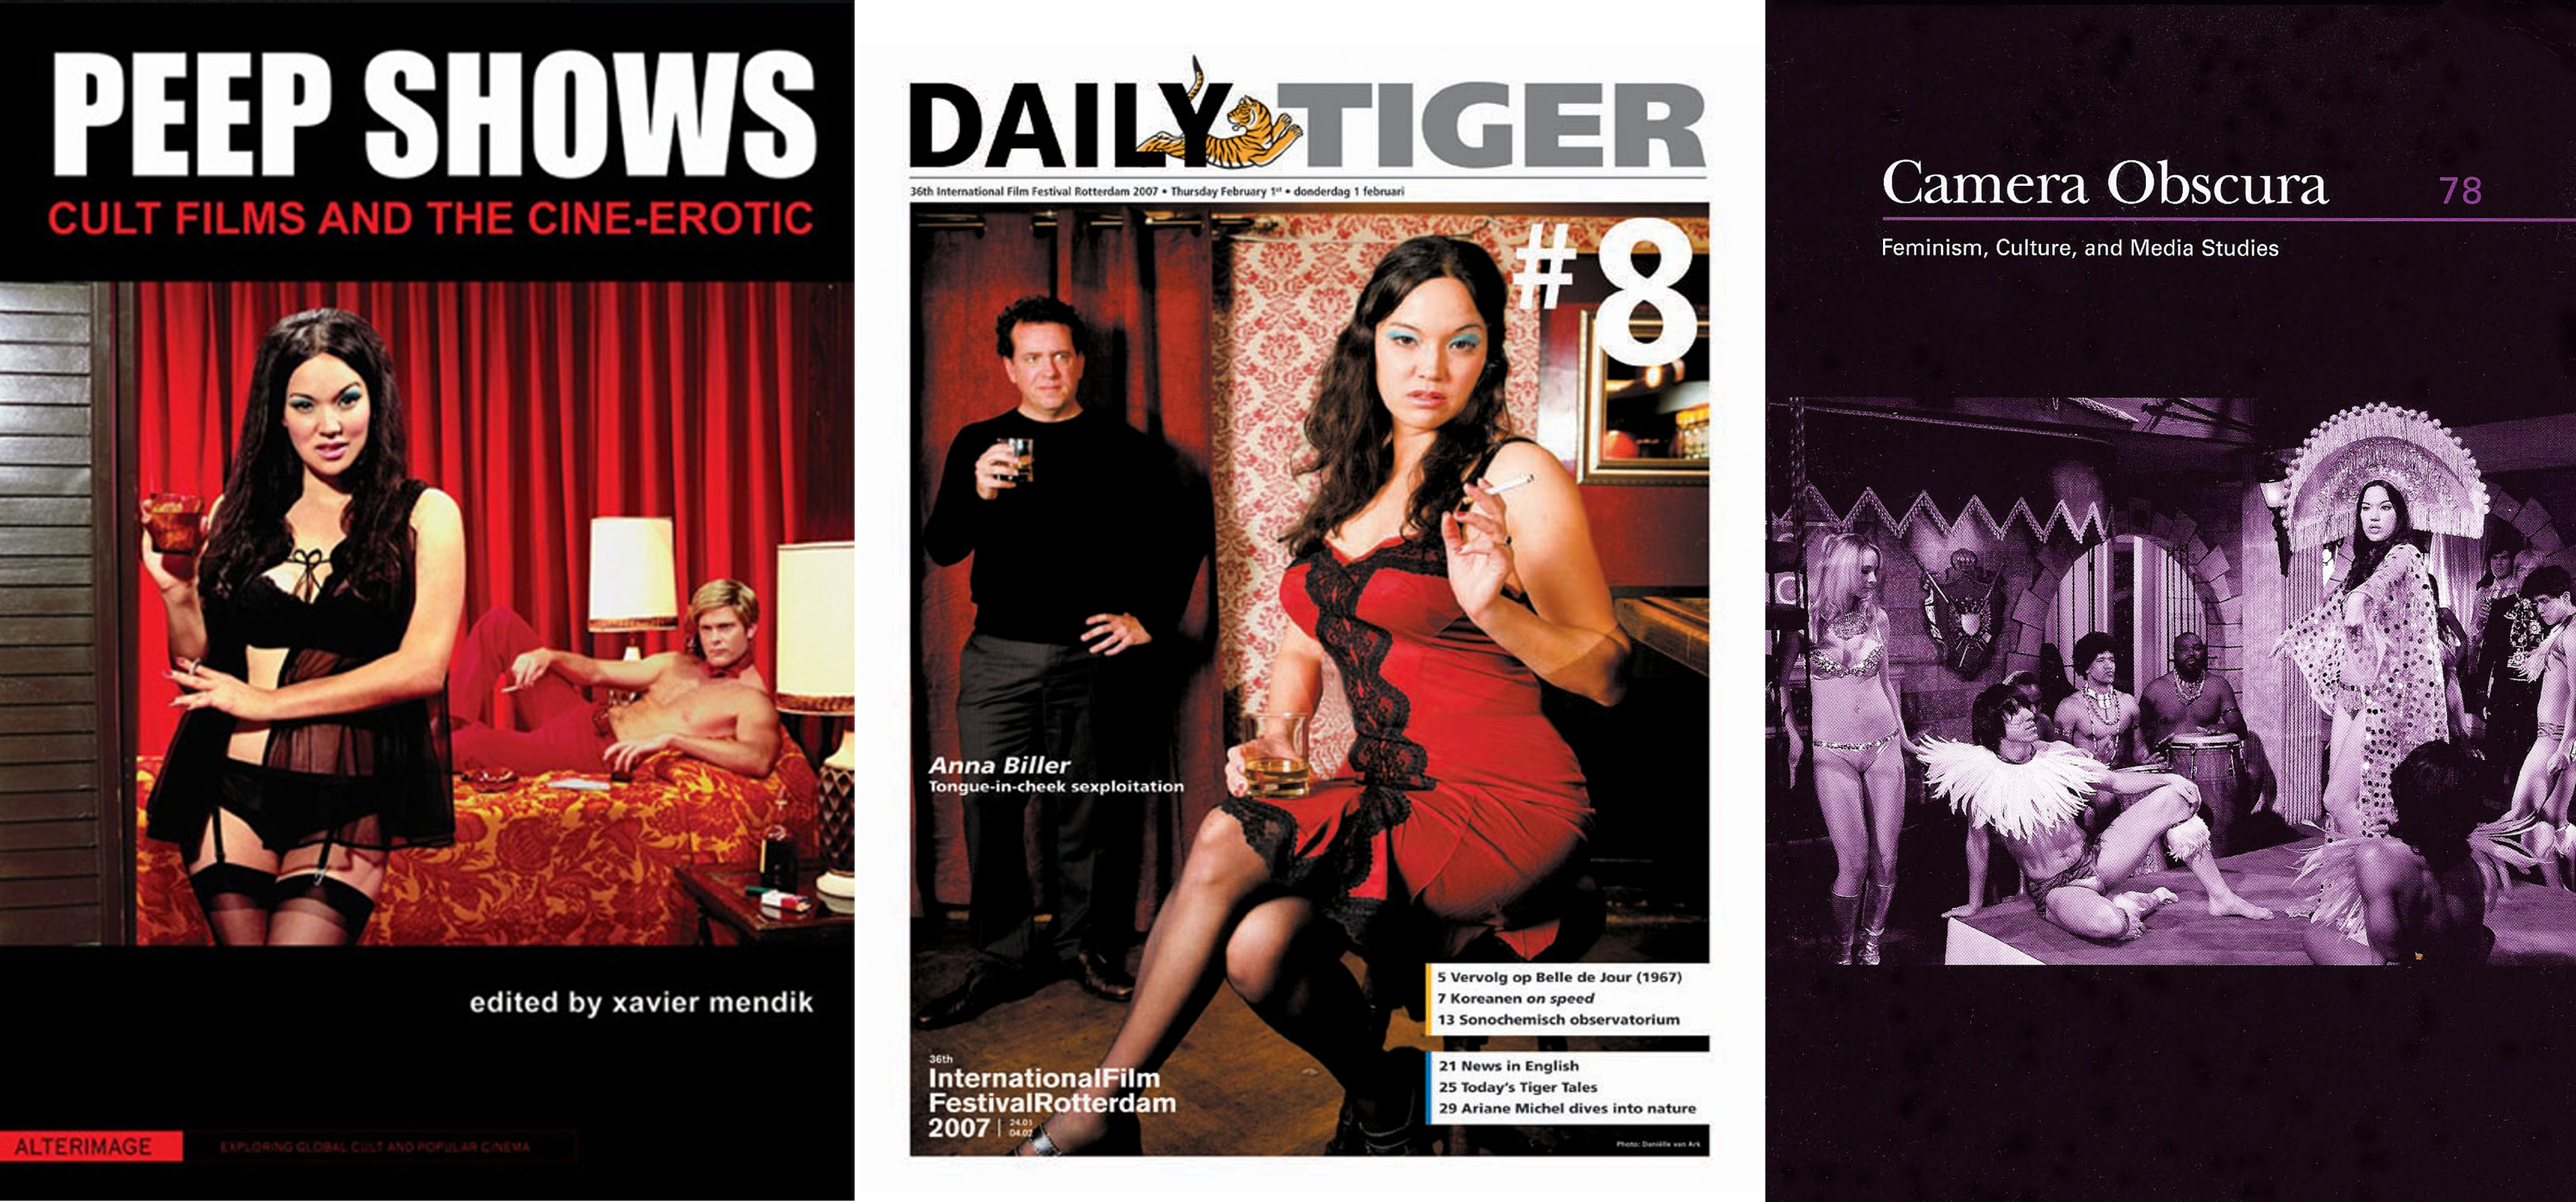 Anna Biller on the cover of PEEP SHOWS, THE DAILY TIGER, and CAMERA OBSCURA